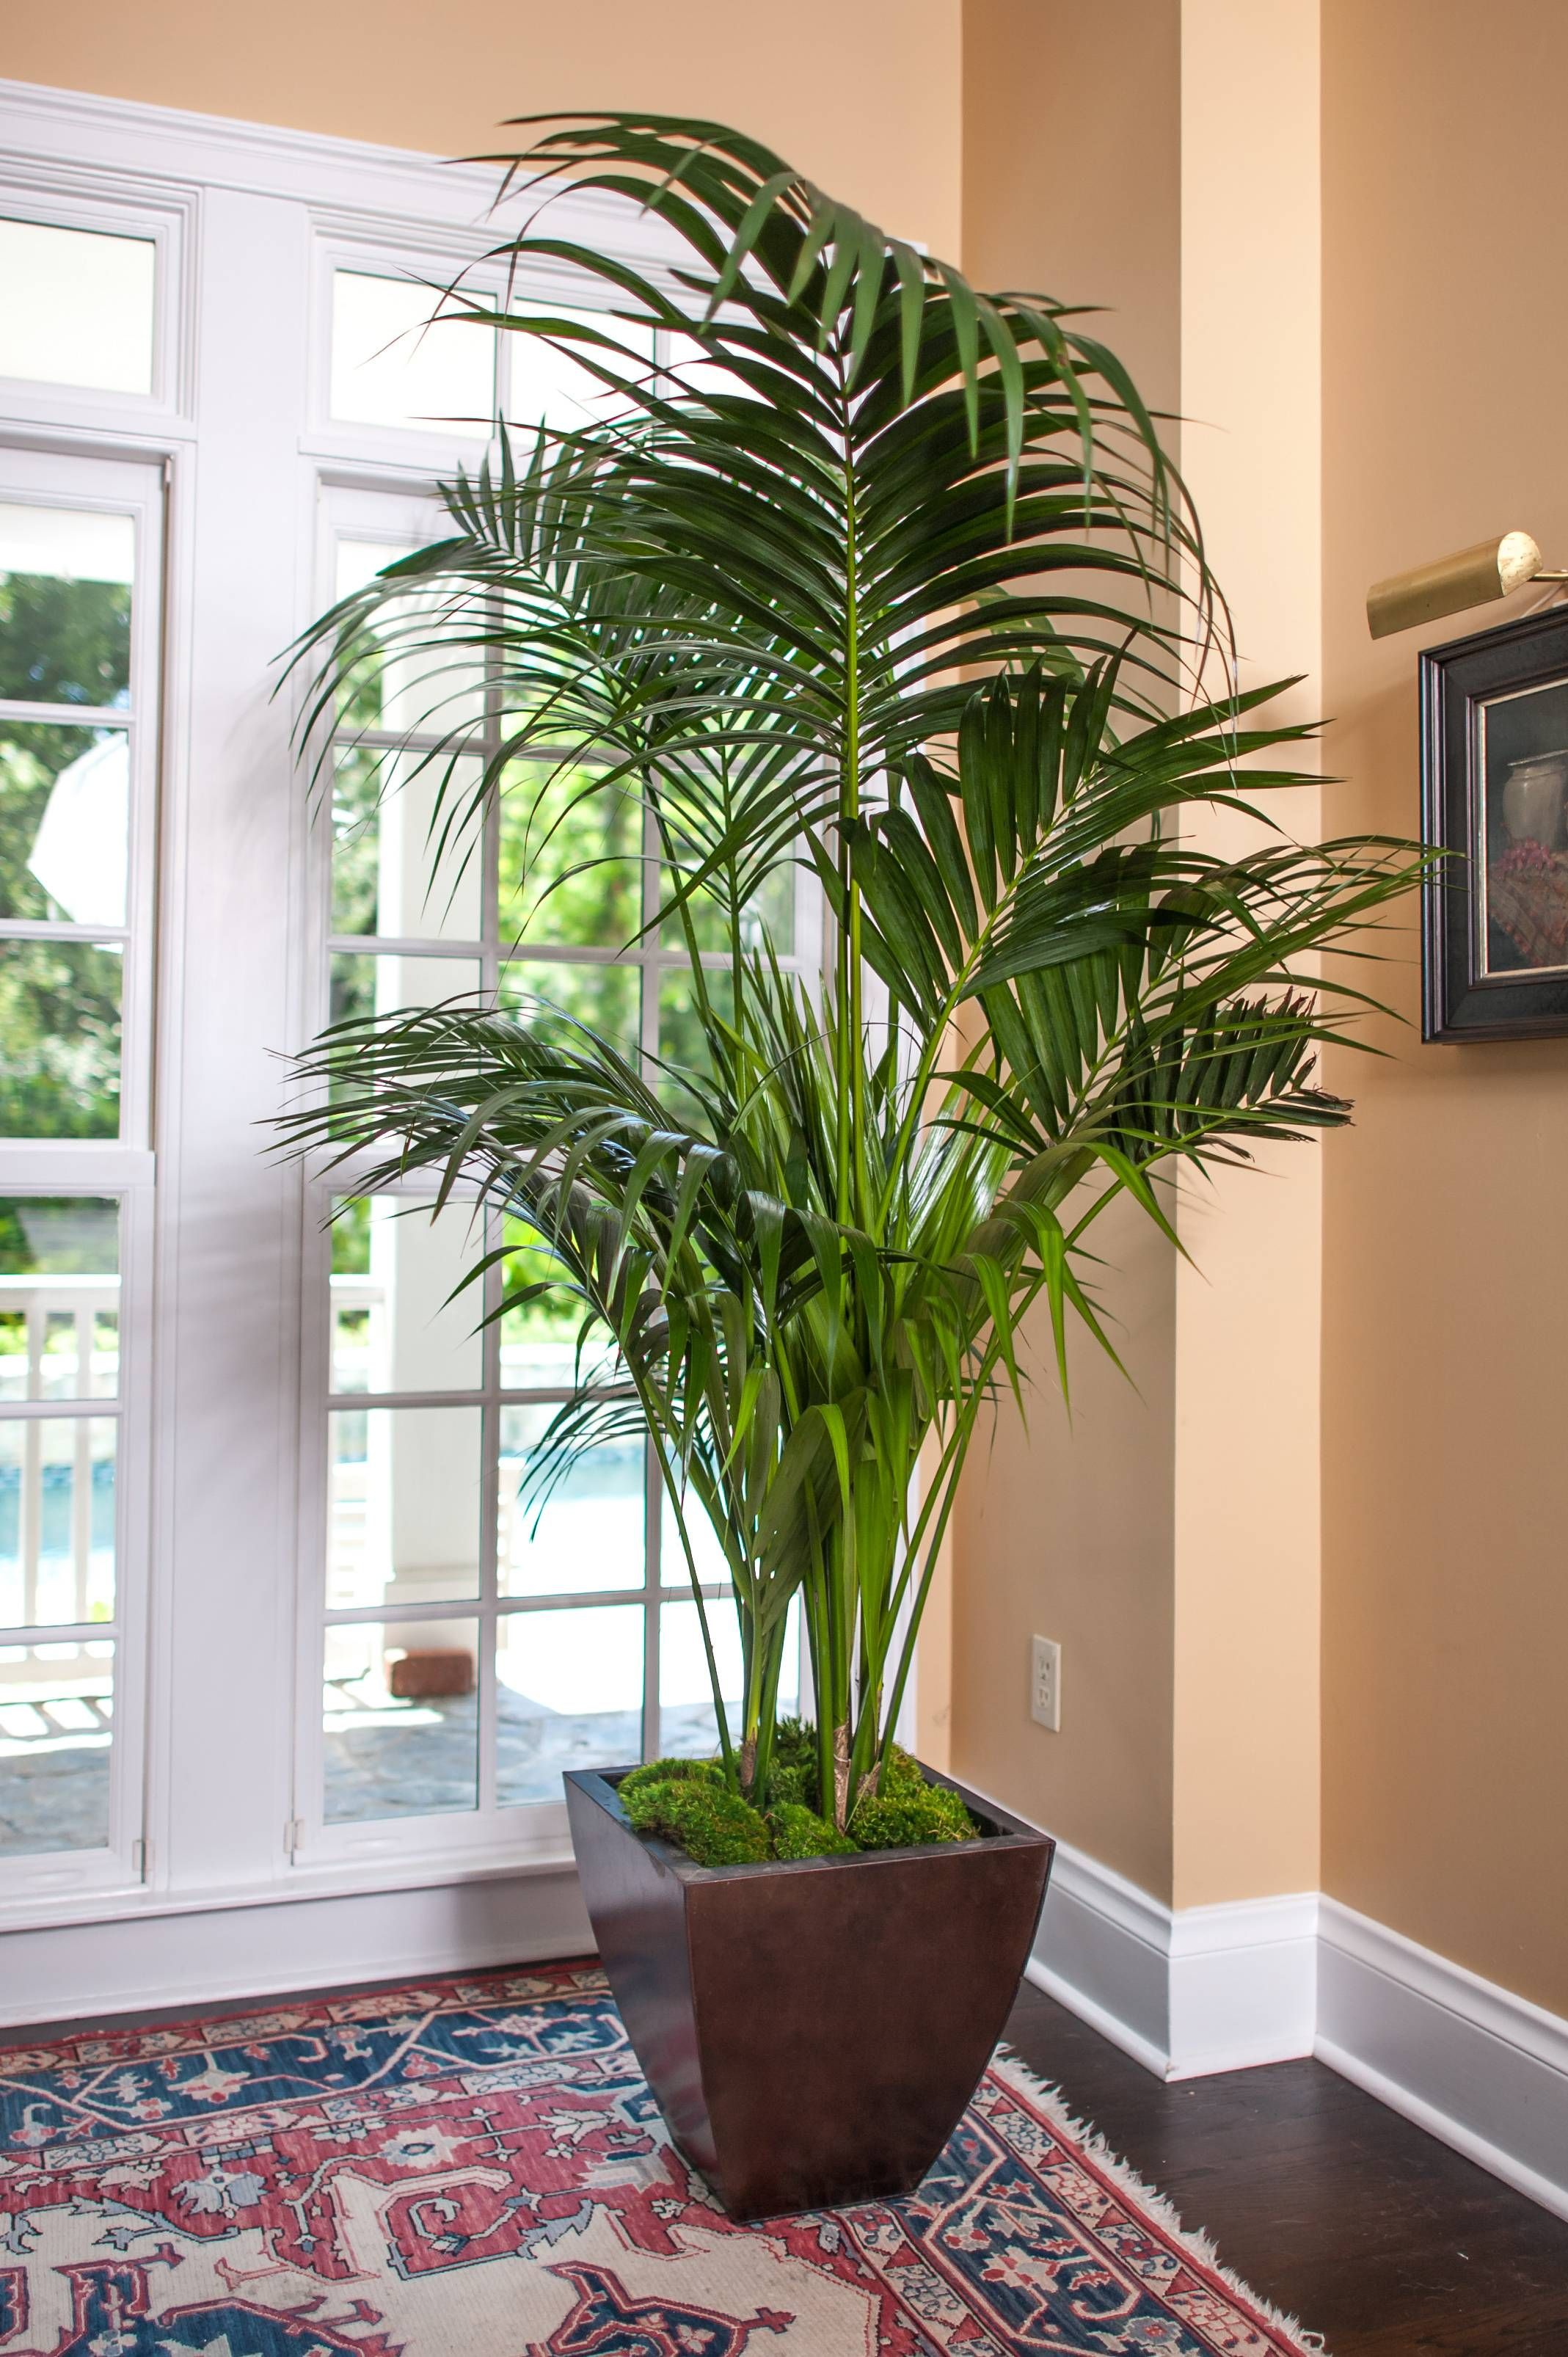 Kentia Palm Large High Quality Tropical Plants Shipped to ...